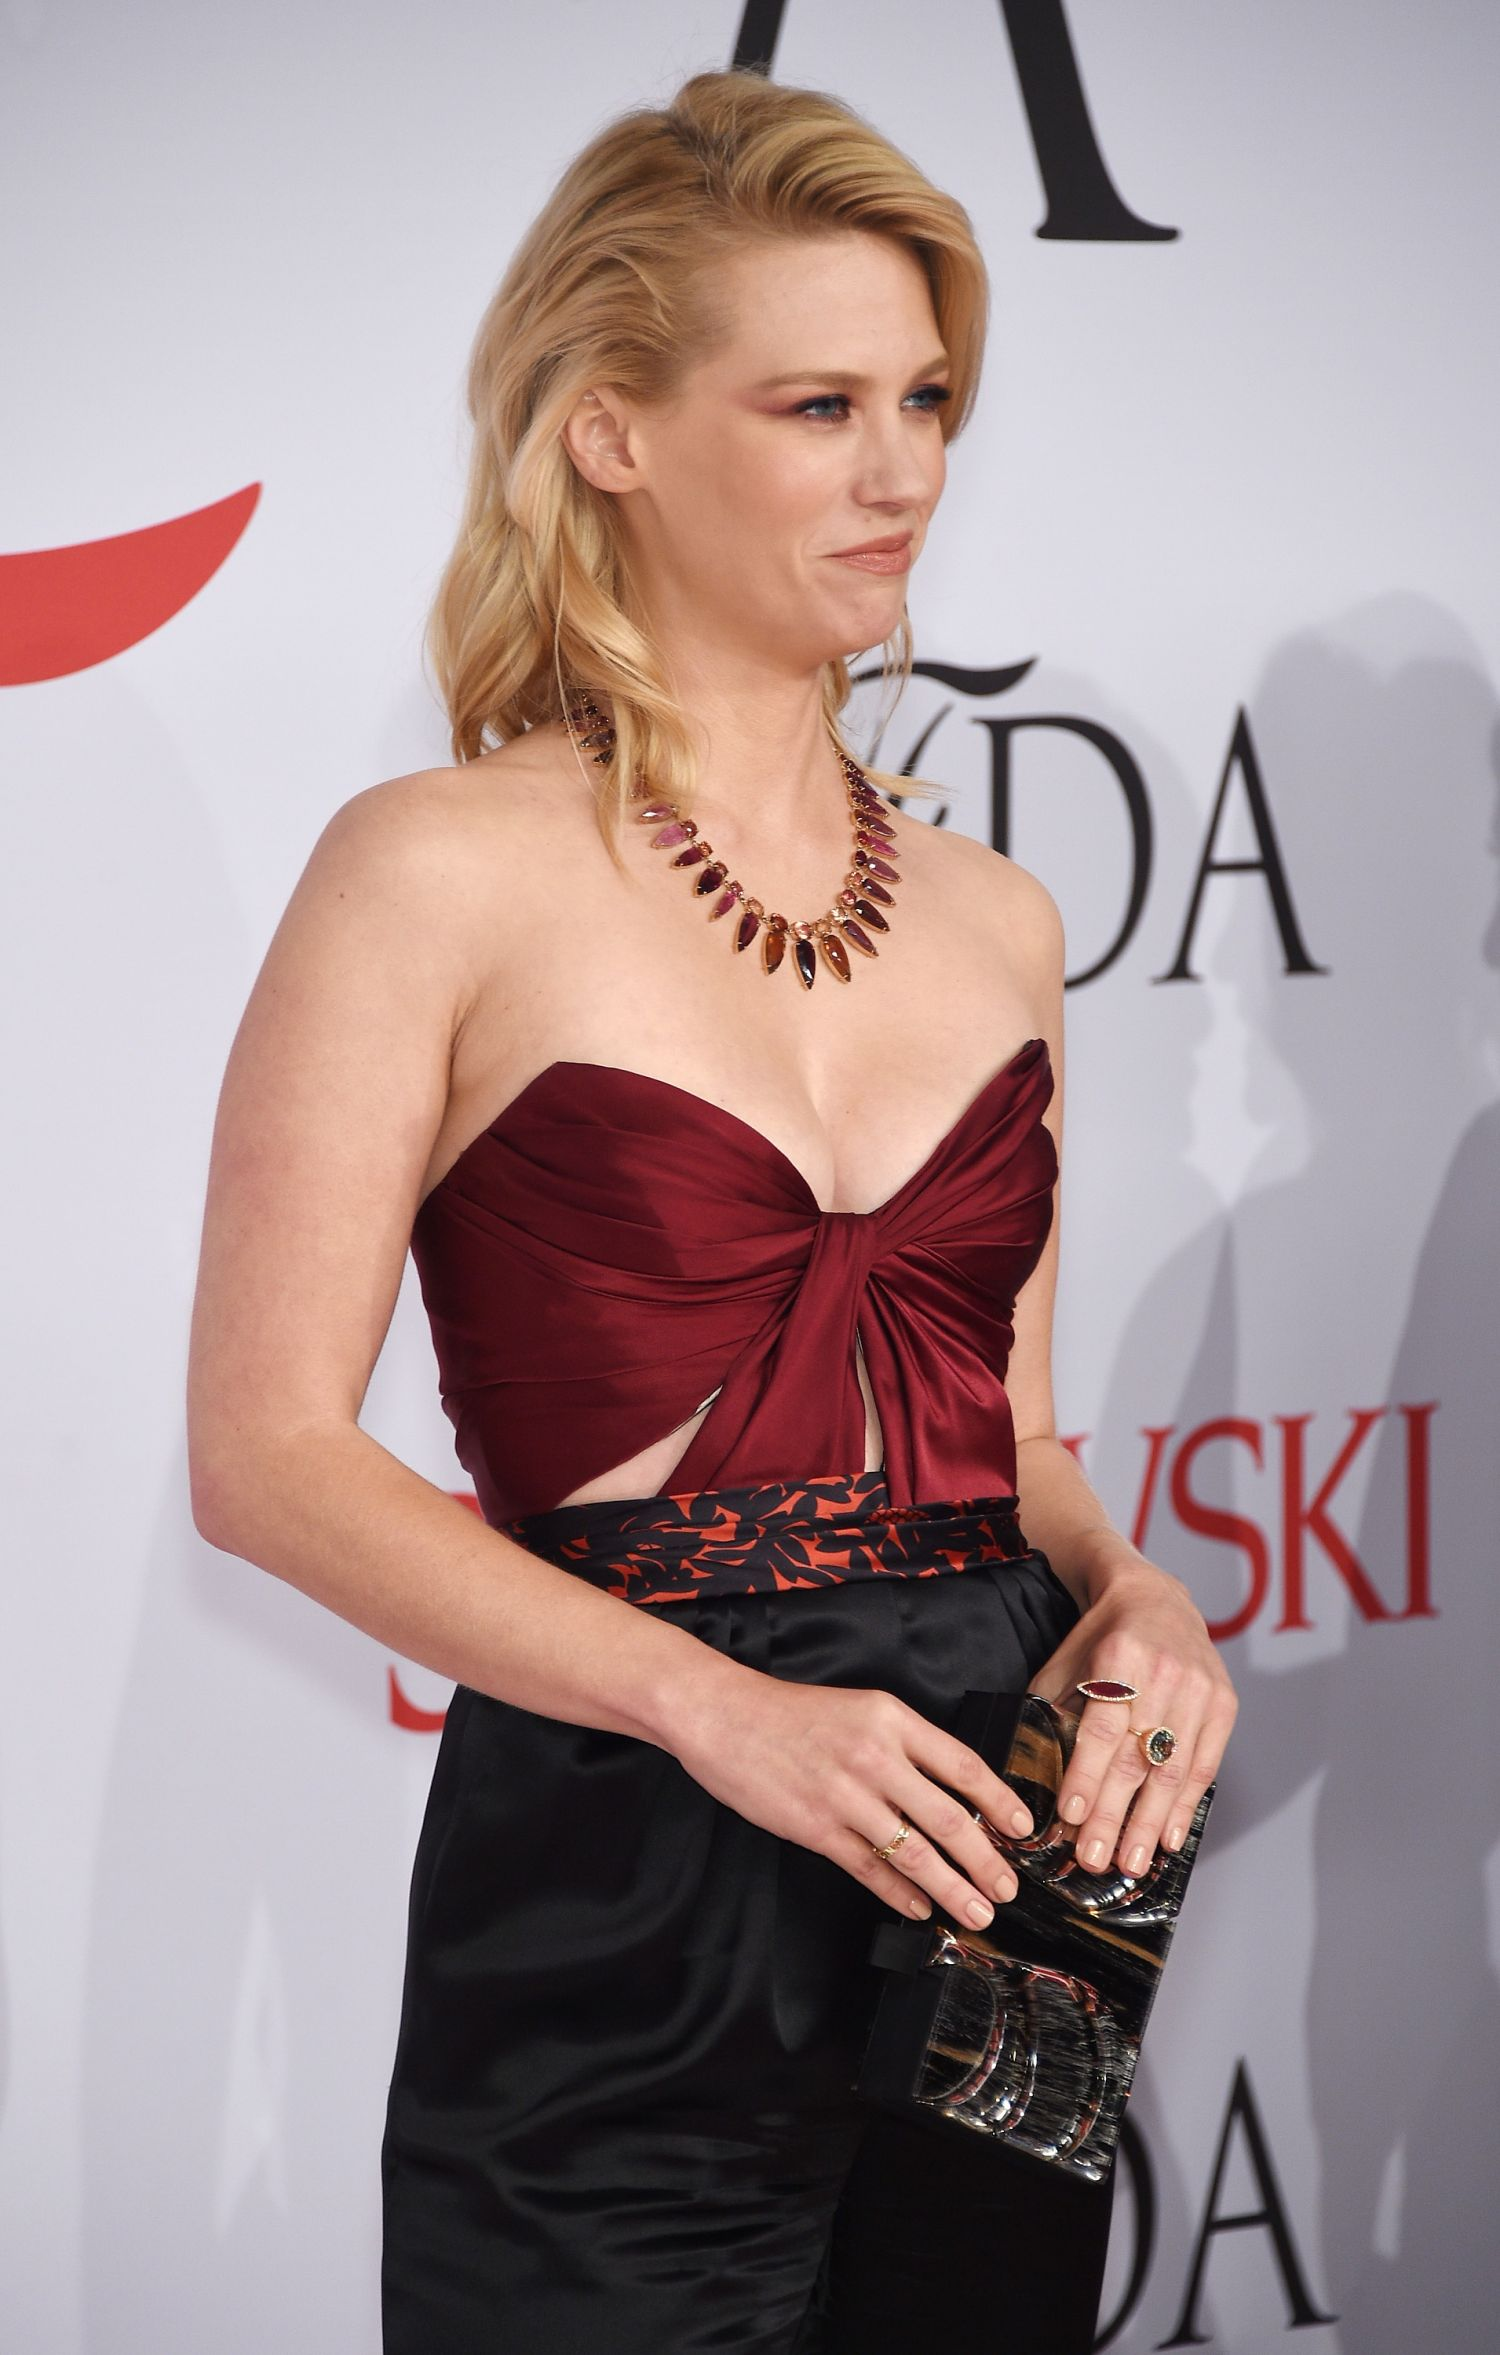 January-Jones-2015-CFDA-Fashion-Awards-NY-3